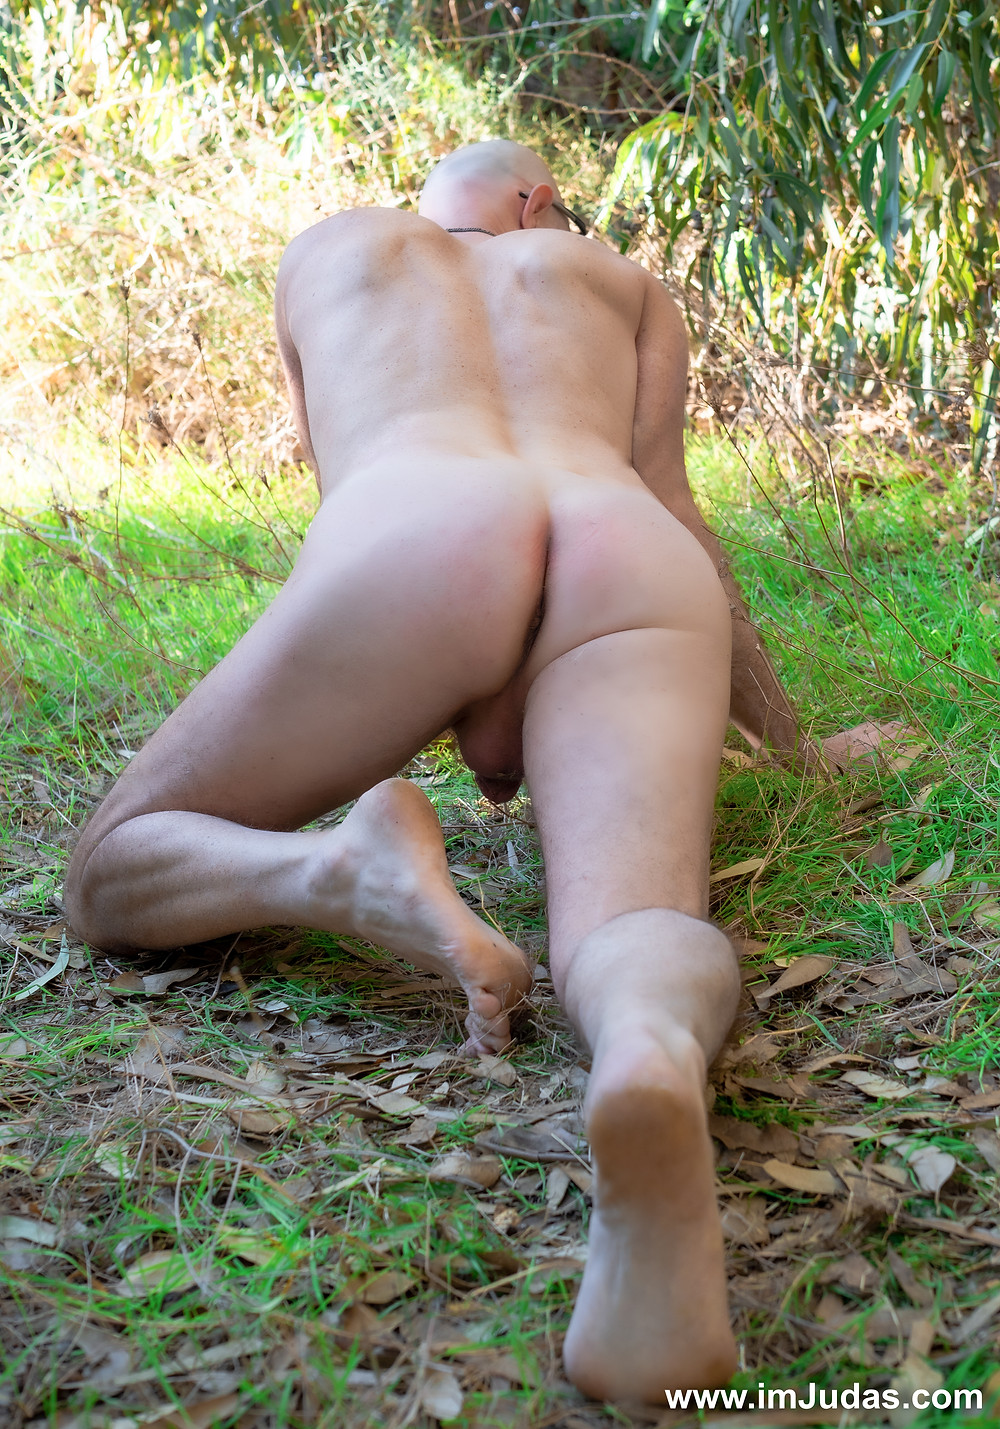 Naked outdoors